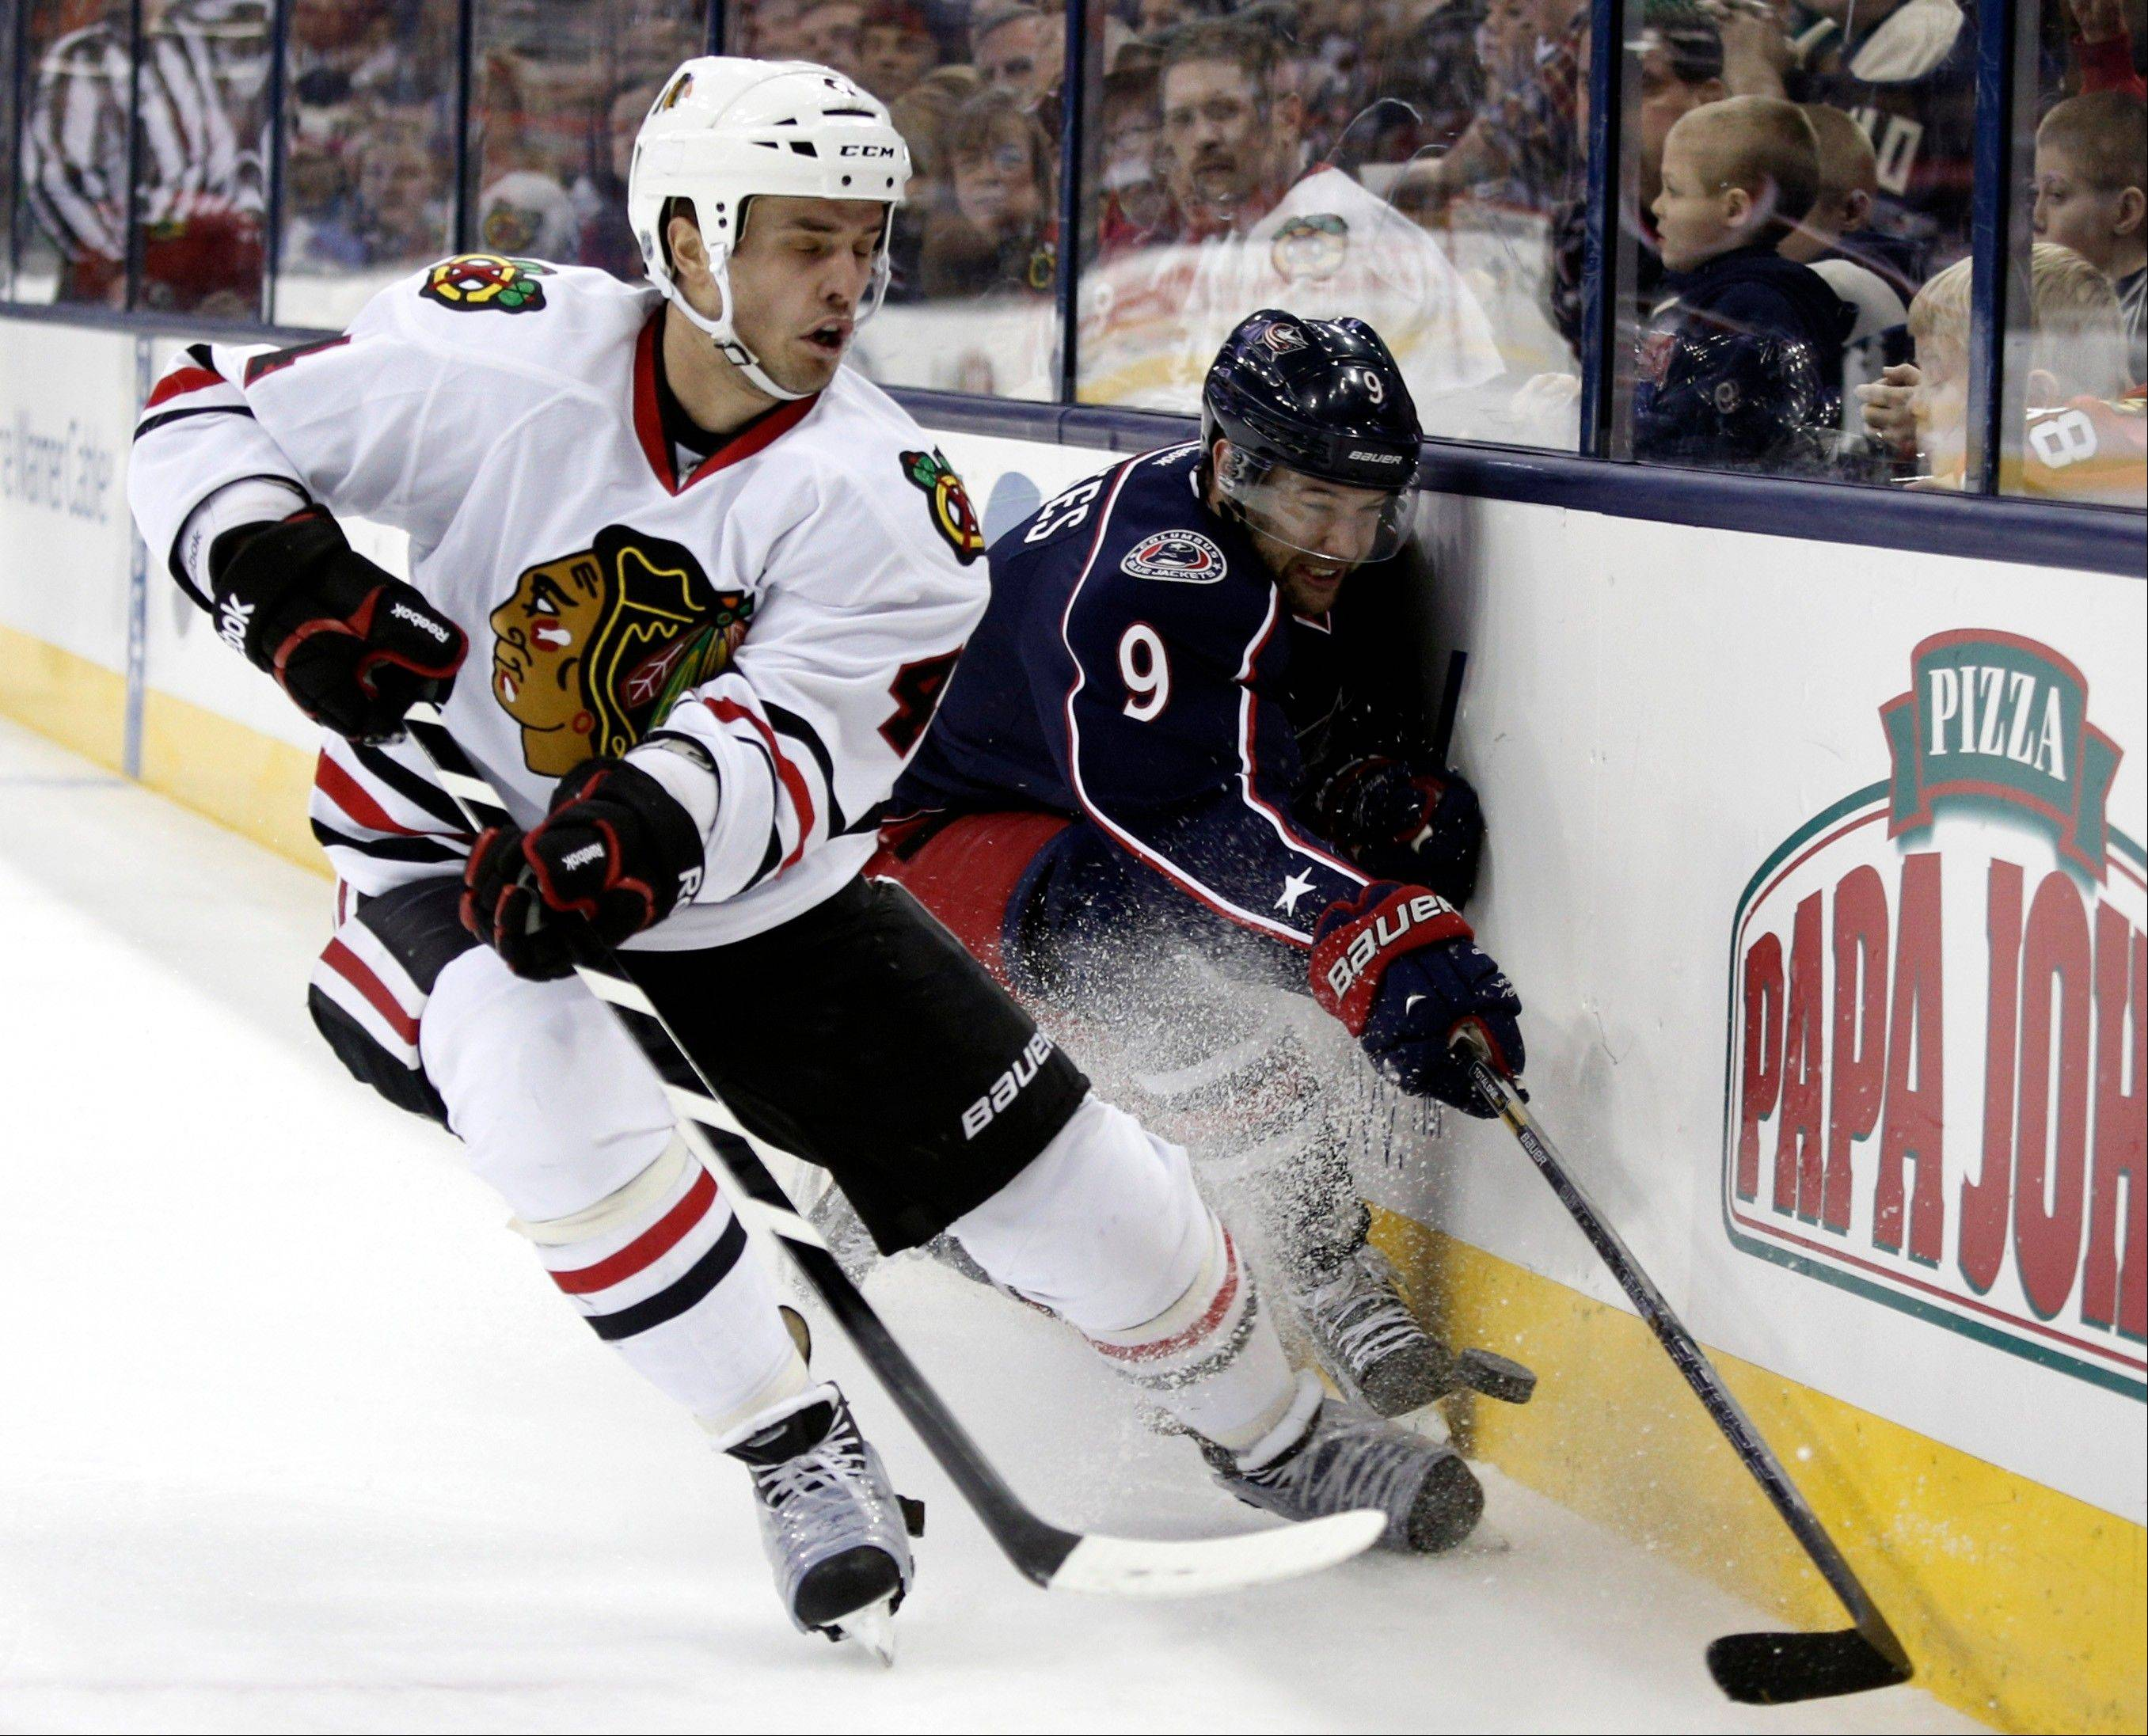 Images: Blackhawks vs. Blue Jackets